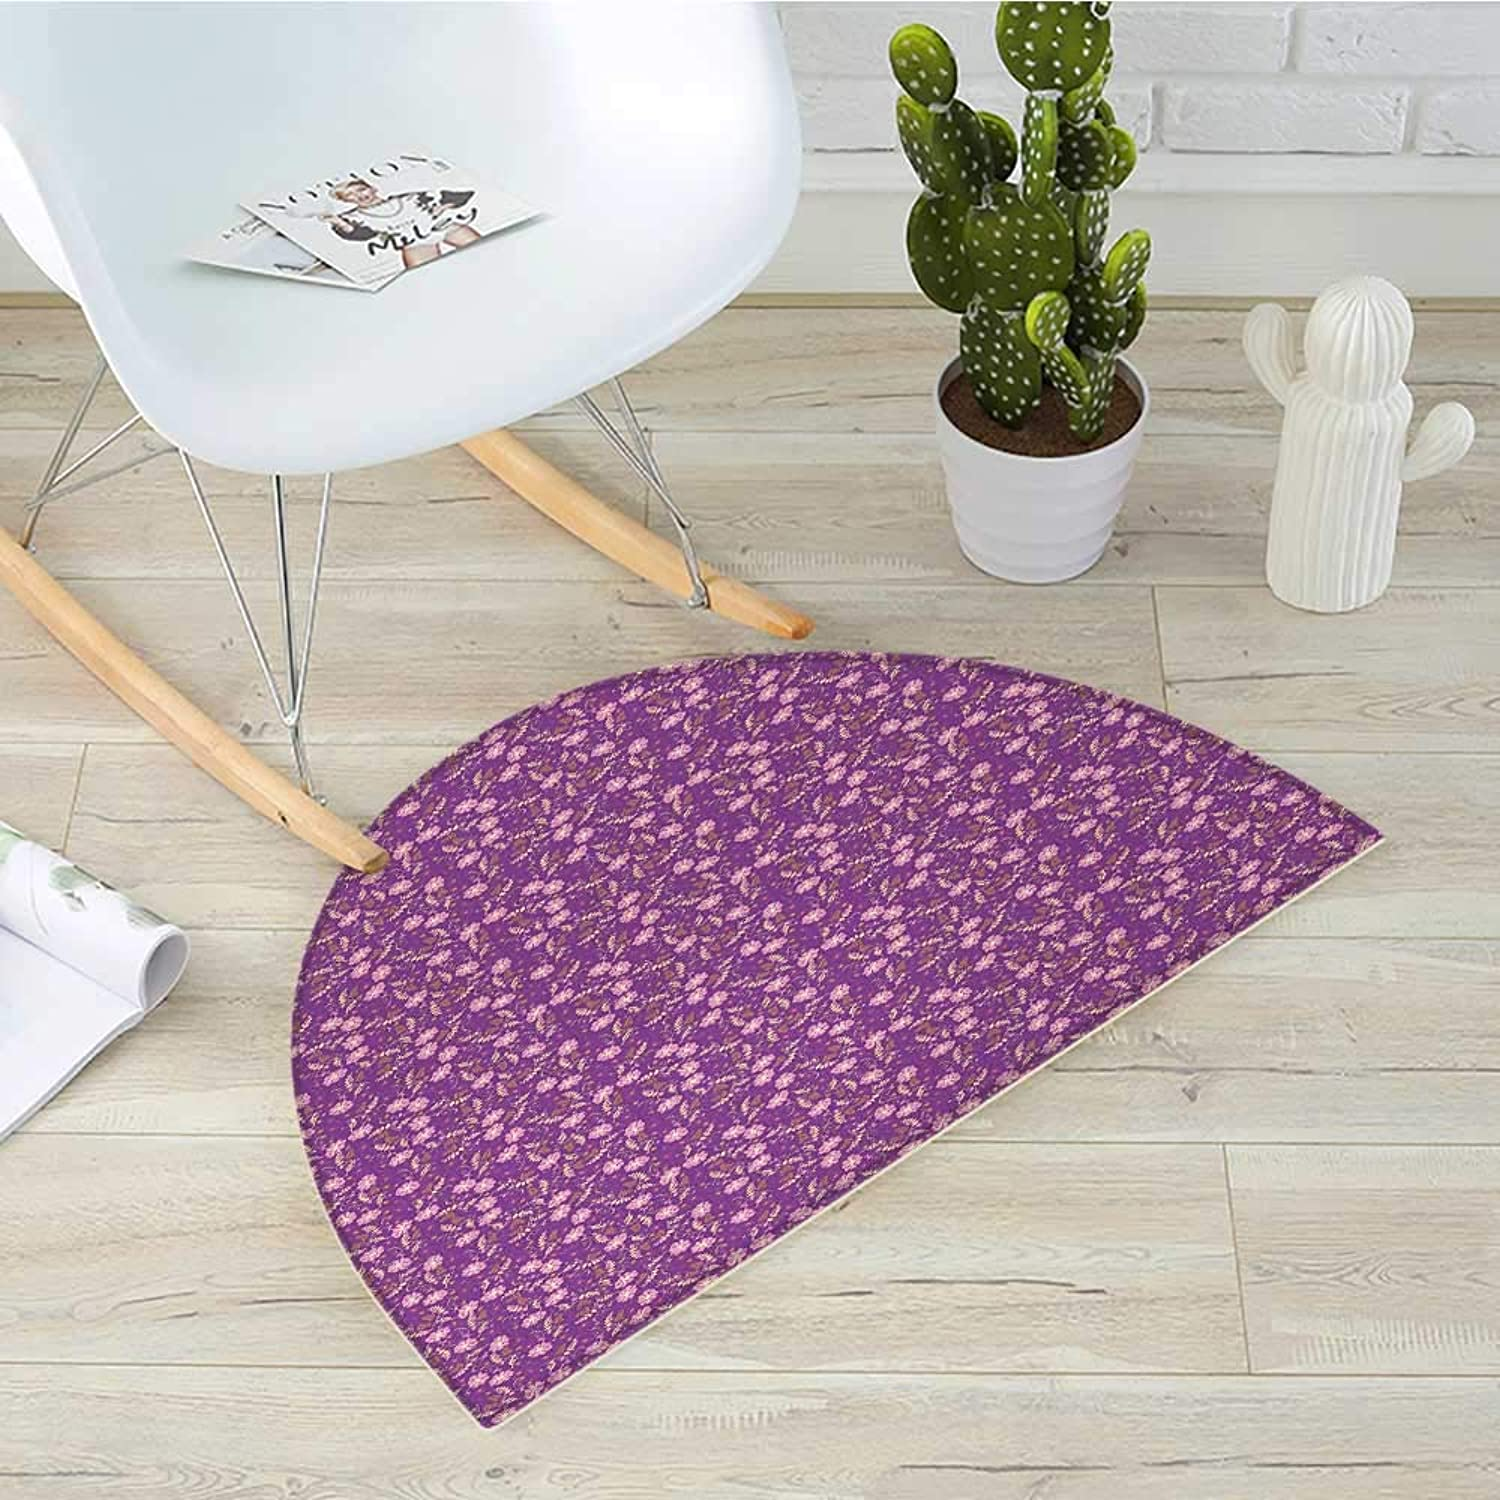 Floral Semicircular CushionFlourishing Nature with Blooming Petals and Leaves Romantic Design Entry Door Mat H 31.5  xD 47.2  Purple Pale Pink Marigold